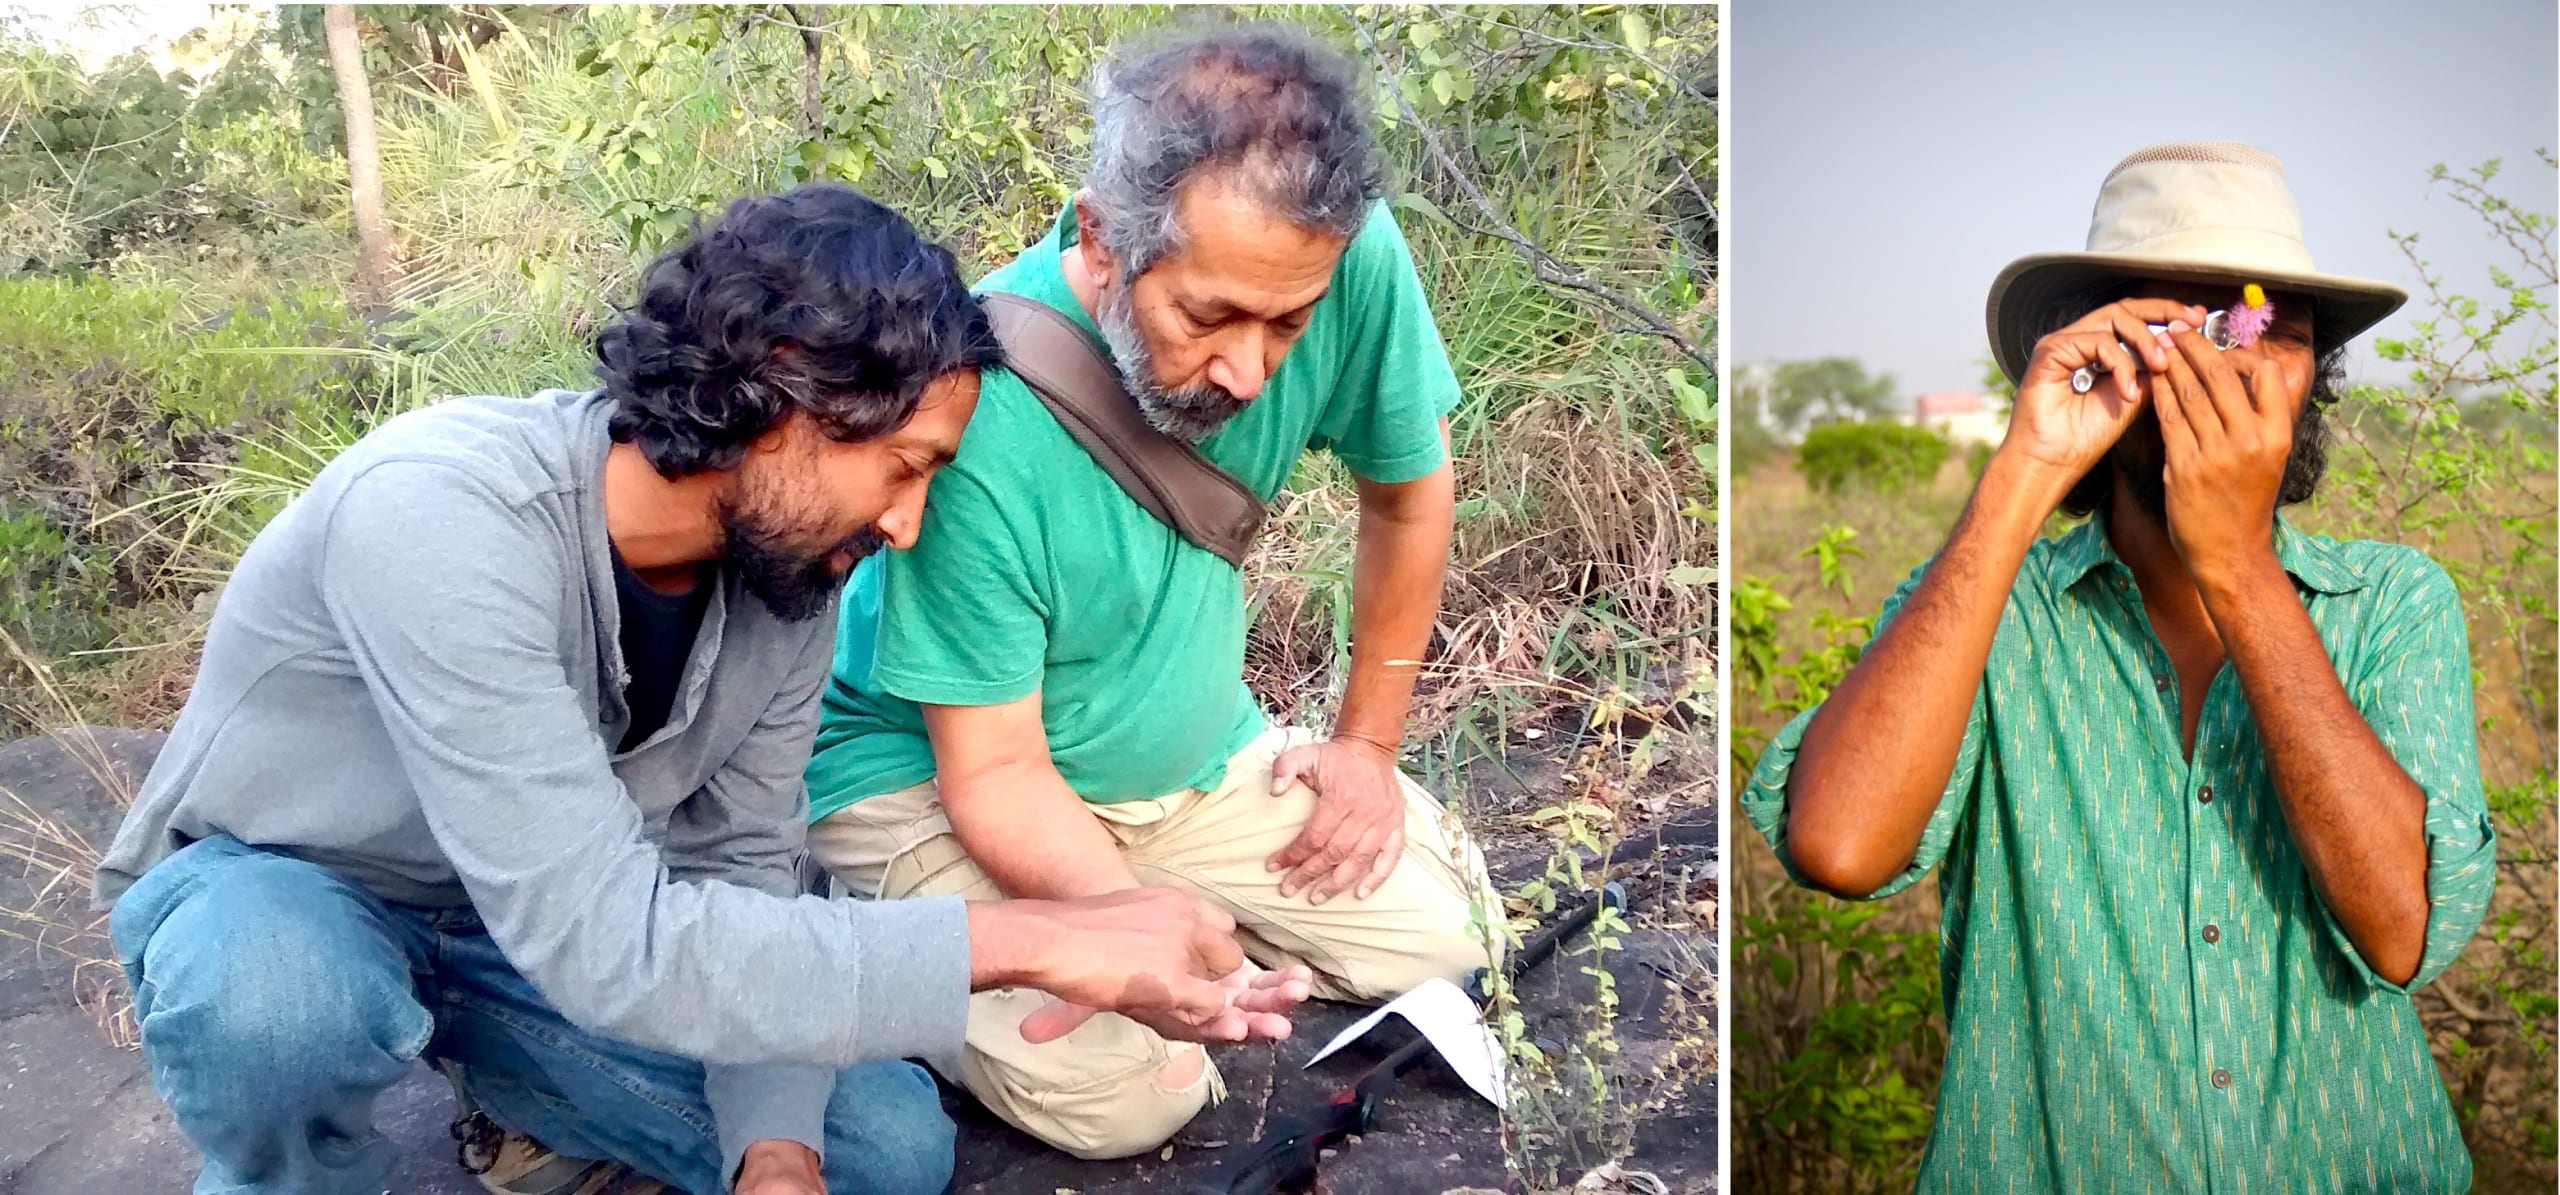 (Left) A chance meeting with naturalist Pradip Krishen in 2005 set him on the path of restoring and rewilding degraded landscapes in Uttarakhand, Rajasthan, and the National Capital Region. (Right) A self-taught ecologist, he feels it is critical to study and understand native plants found in a landscape before setting out to restore it.  Cover photo: Despite the many setbacks he's faced as an activist for the environment and spokesperson for native flora, 47-year-old Vijay Dhasmana, who was born in Bayali village in Uttarakhand, is hopeful about the future.